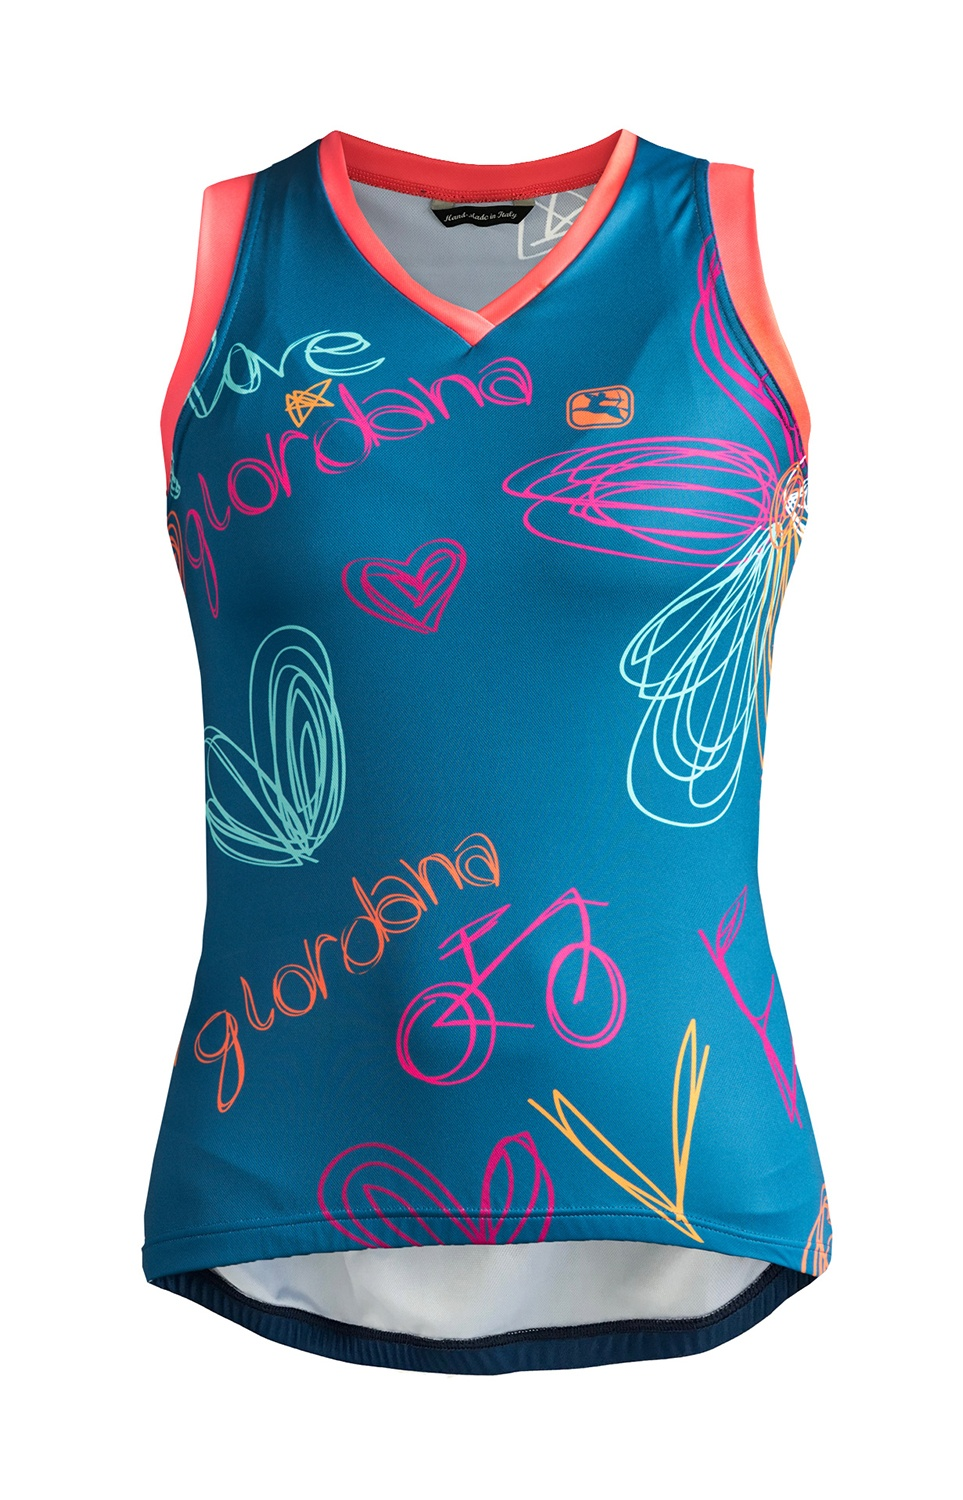 Giordana Arts Love Sleeveless Jersey Ra Cycles Nama